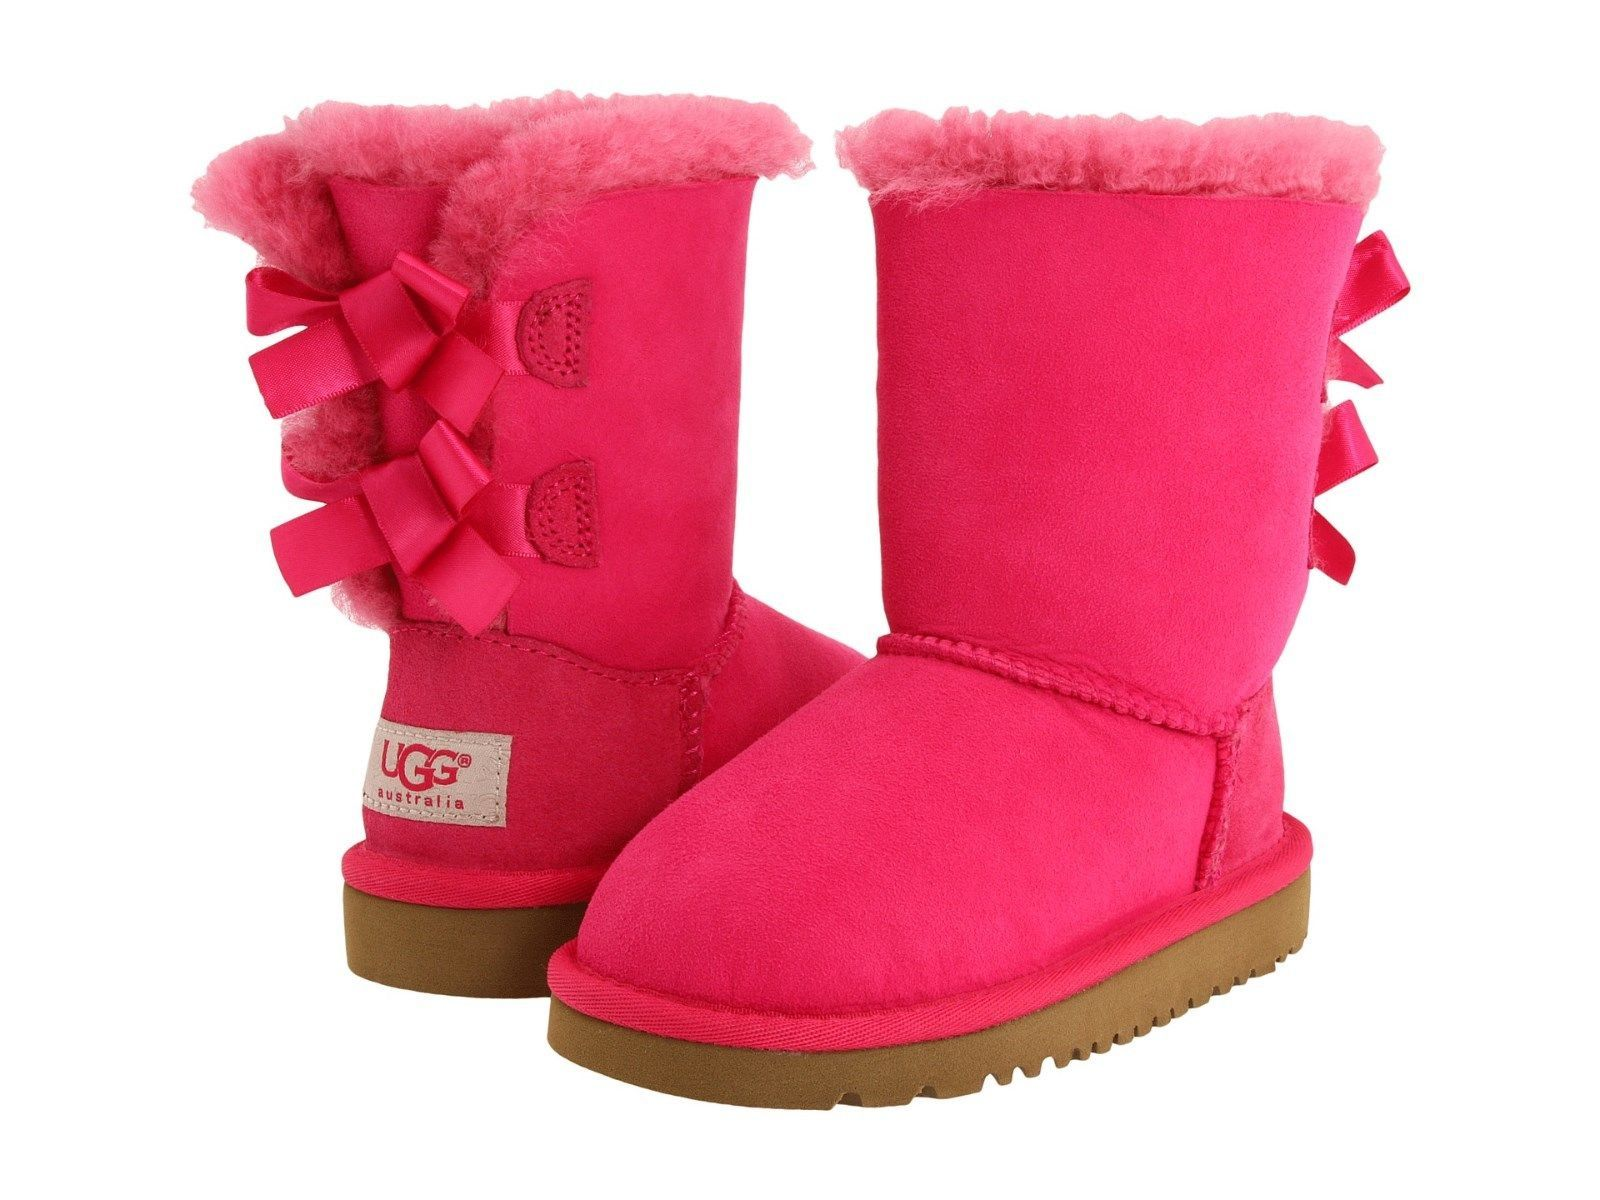 47208c1e2a2 Baby Shoes 147285: New Ugg Toddler Bailey Bow Boots Cerise Dark Pink ...